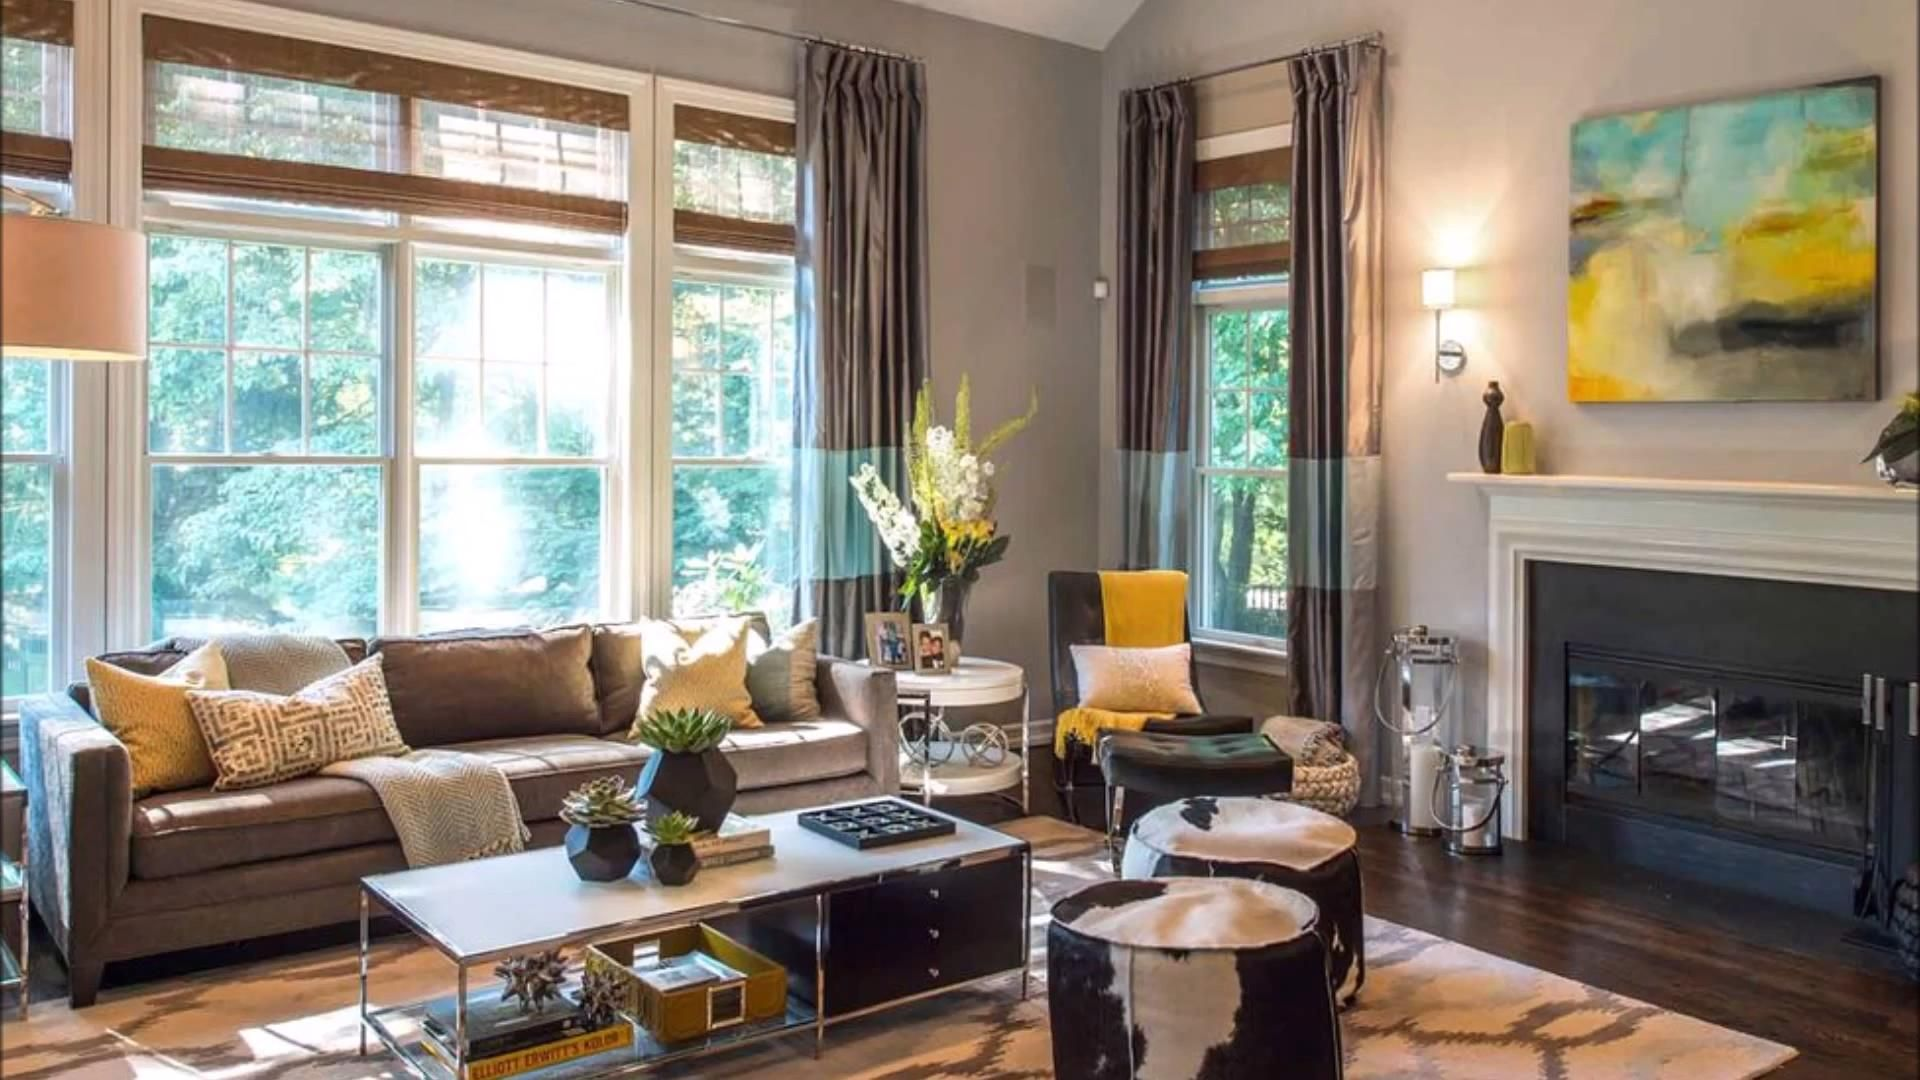 Find Easy and Creative Style Tips For Stunning Living Room Interiors! #LivingRoom #LivingRoomDesign #LivingRoomDecor #LivingRoomInterior